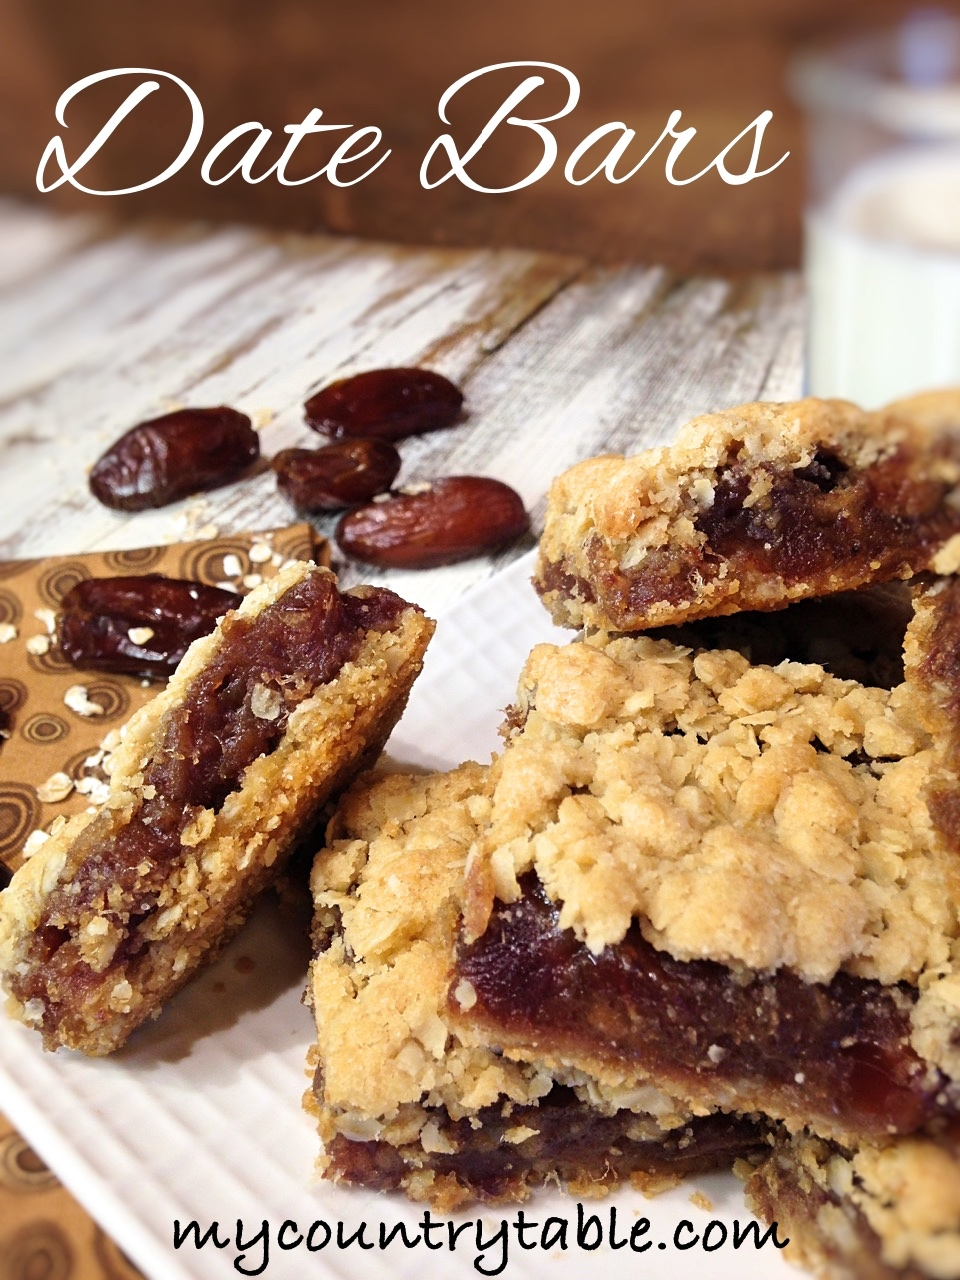 Date Bars - My Country Table